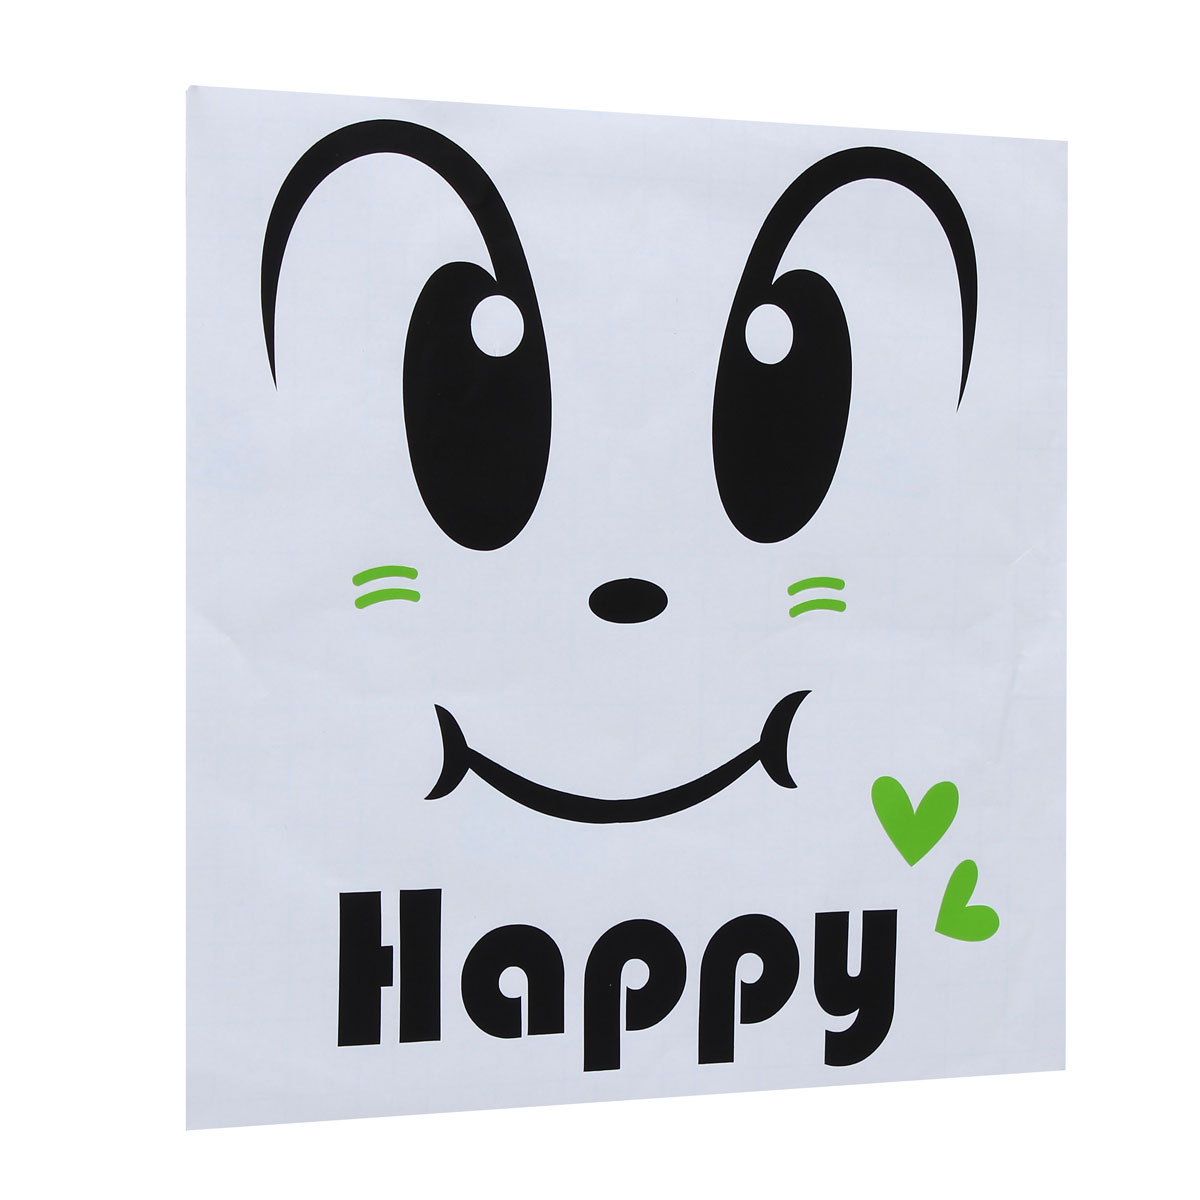 Happy Smily Face Toilet Seat Cover Sticker Bathroom Waterproof Wall Decal Home Decor